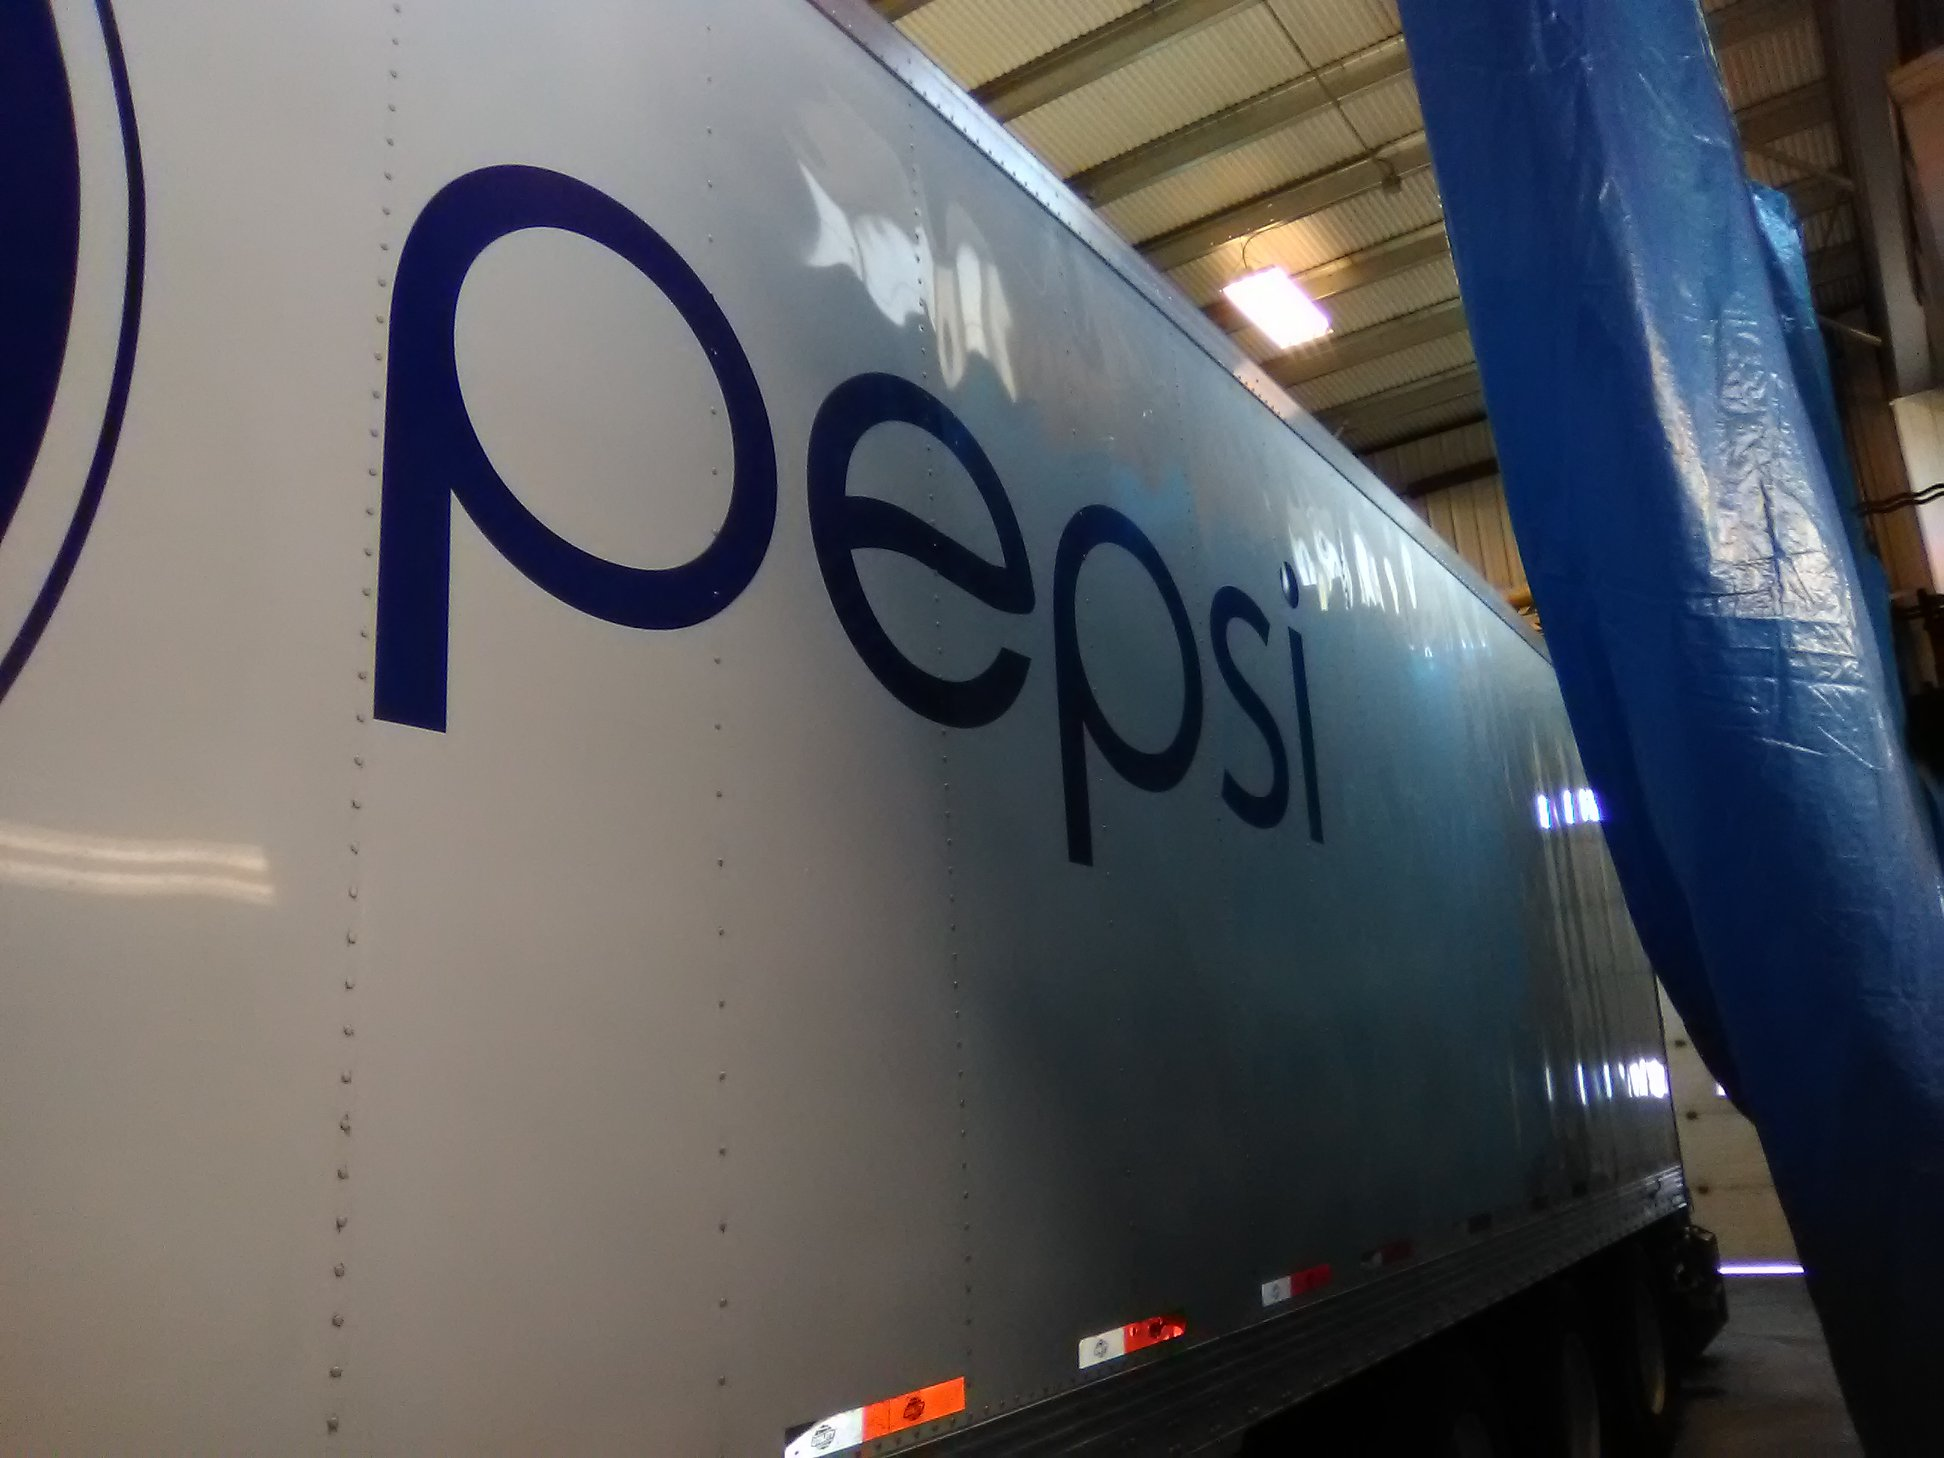 Pepsi Commercial Semi-Truck Fleet Decals